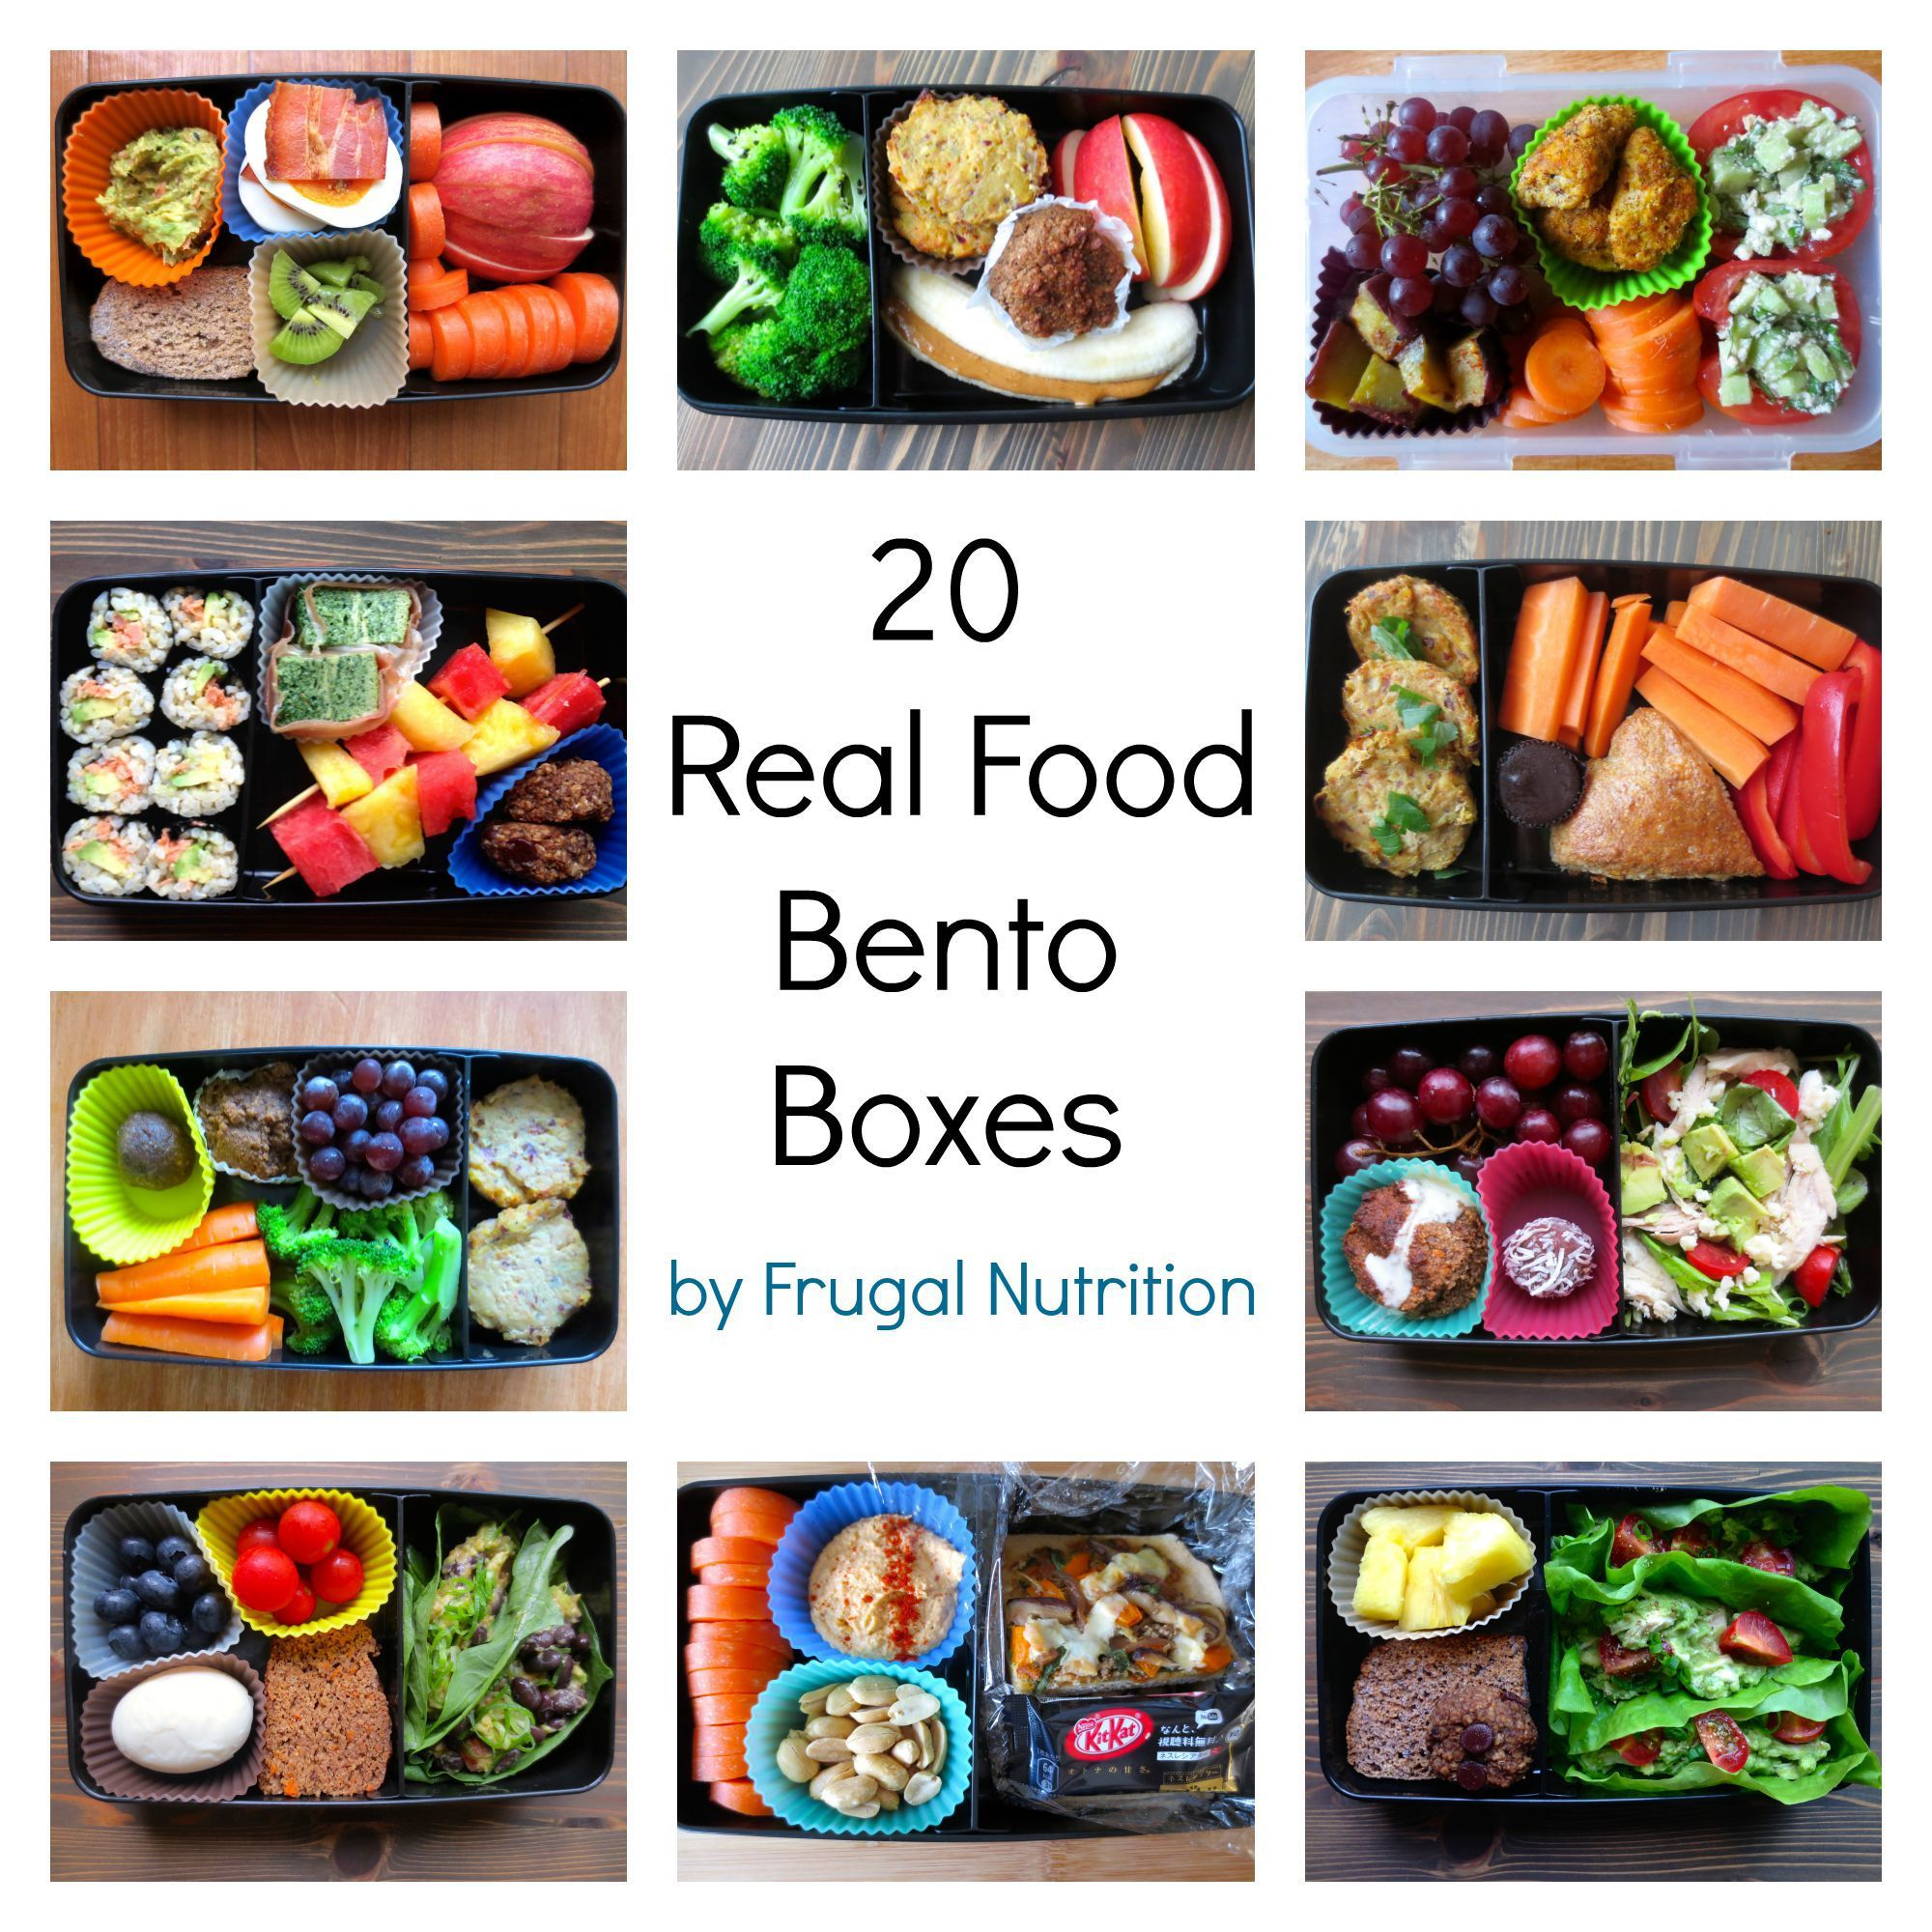 11 Amazing Adult Lunchable Ideas | Bento box, Real foods and Bento